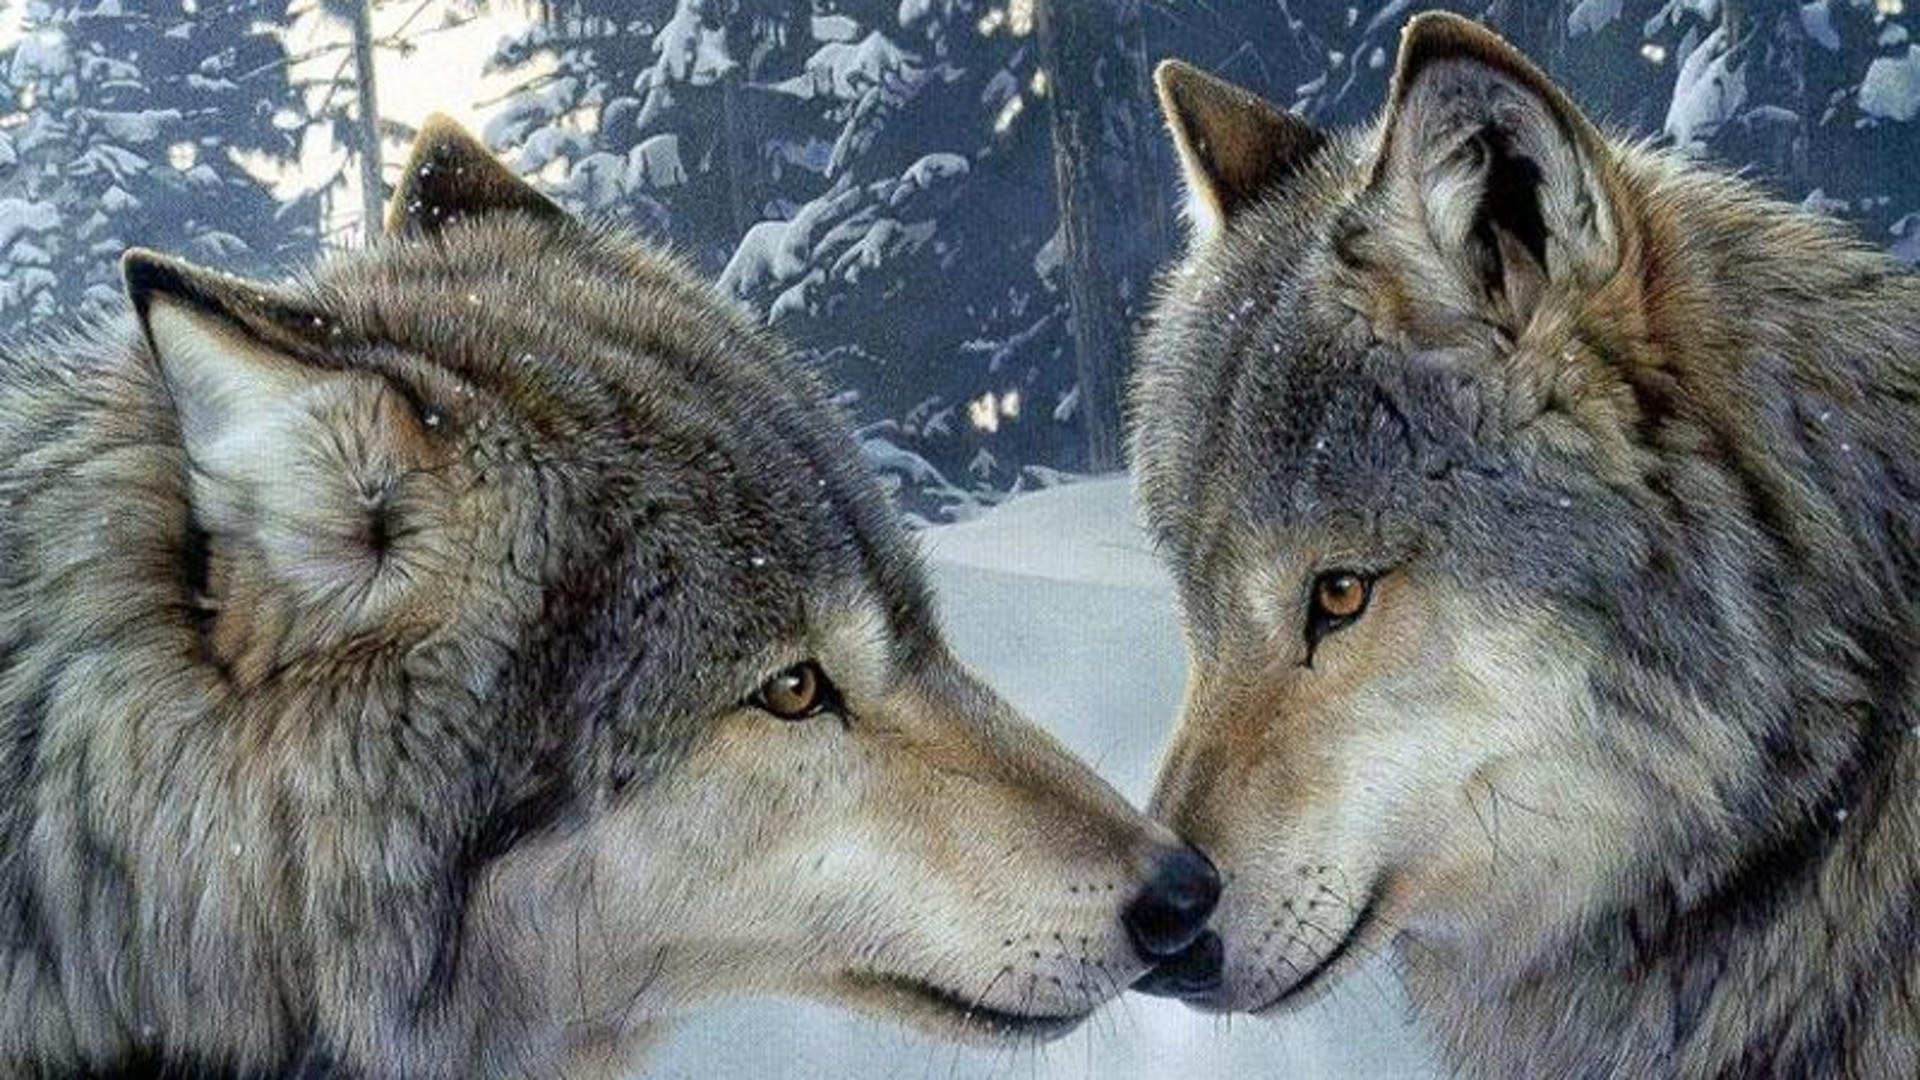 winter_snow_forests_animals_wildlife_wolves_Wallpaper_1920x1080_www.wall321.com